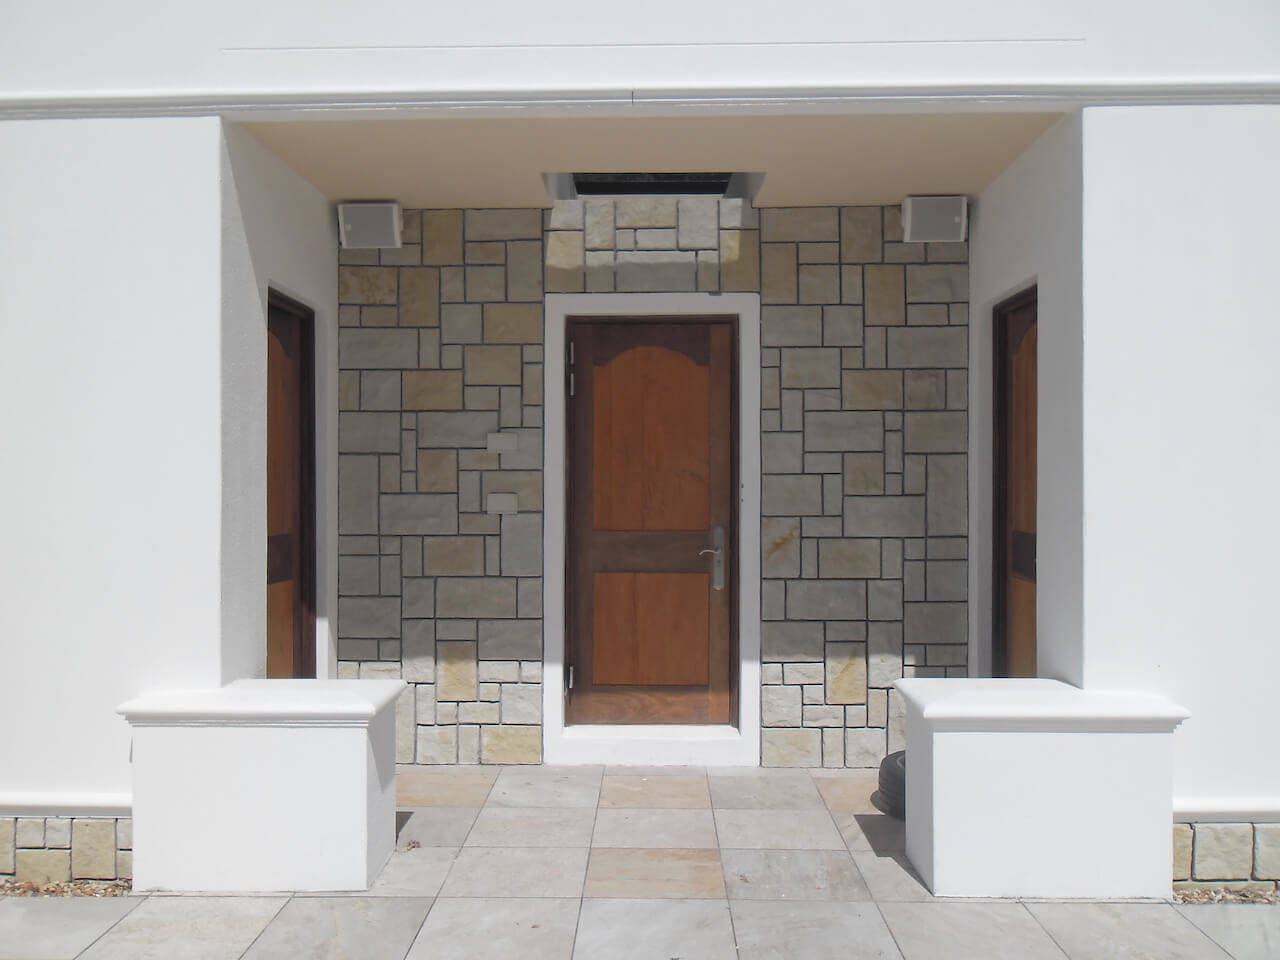 Entrance to Gym and Male Female Cloakrooms Set in Natural Stone Facade